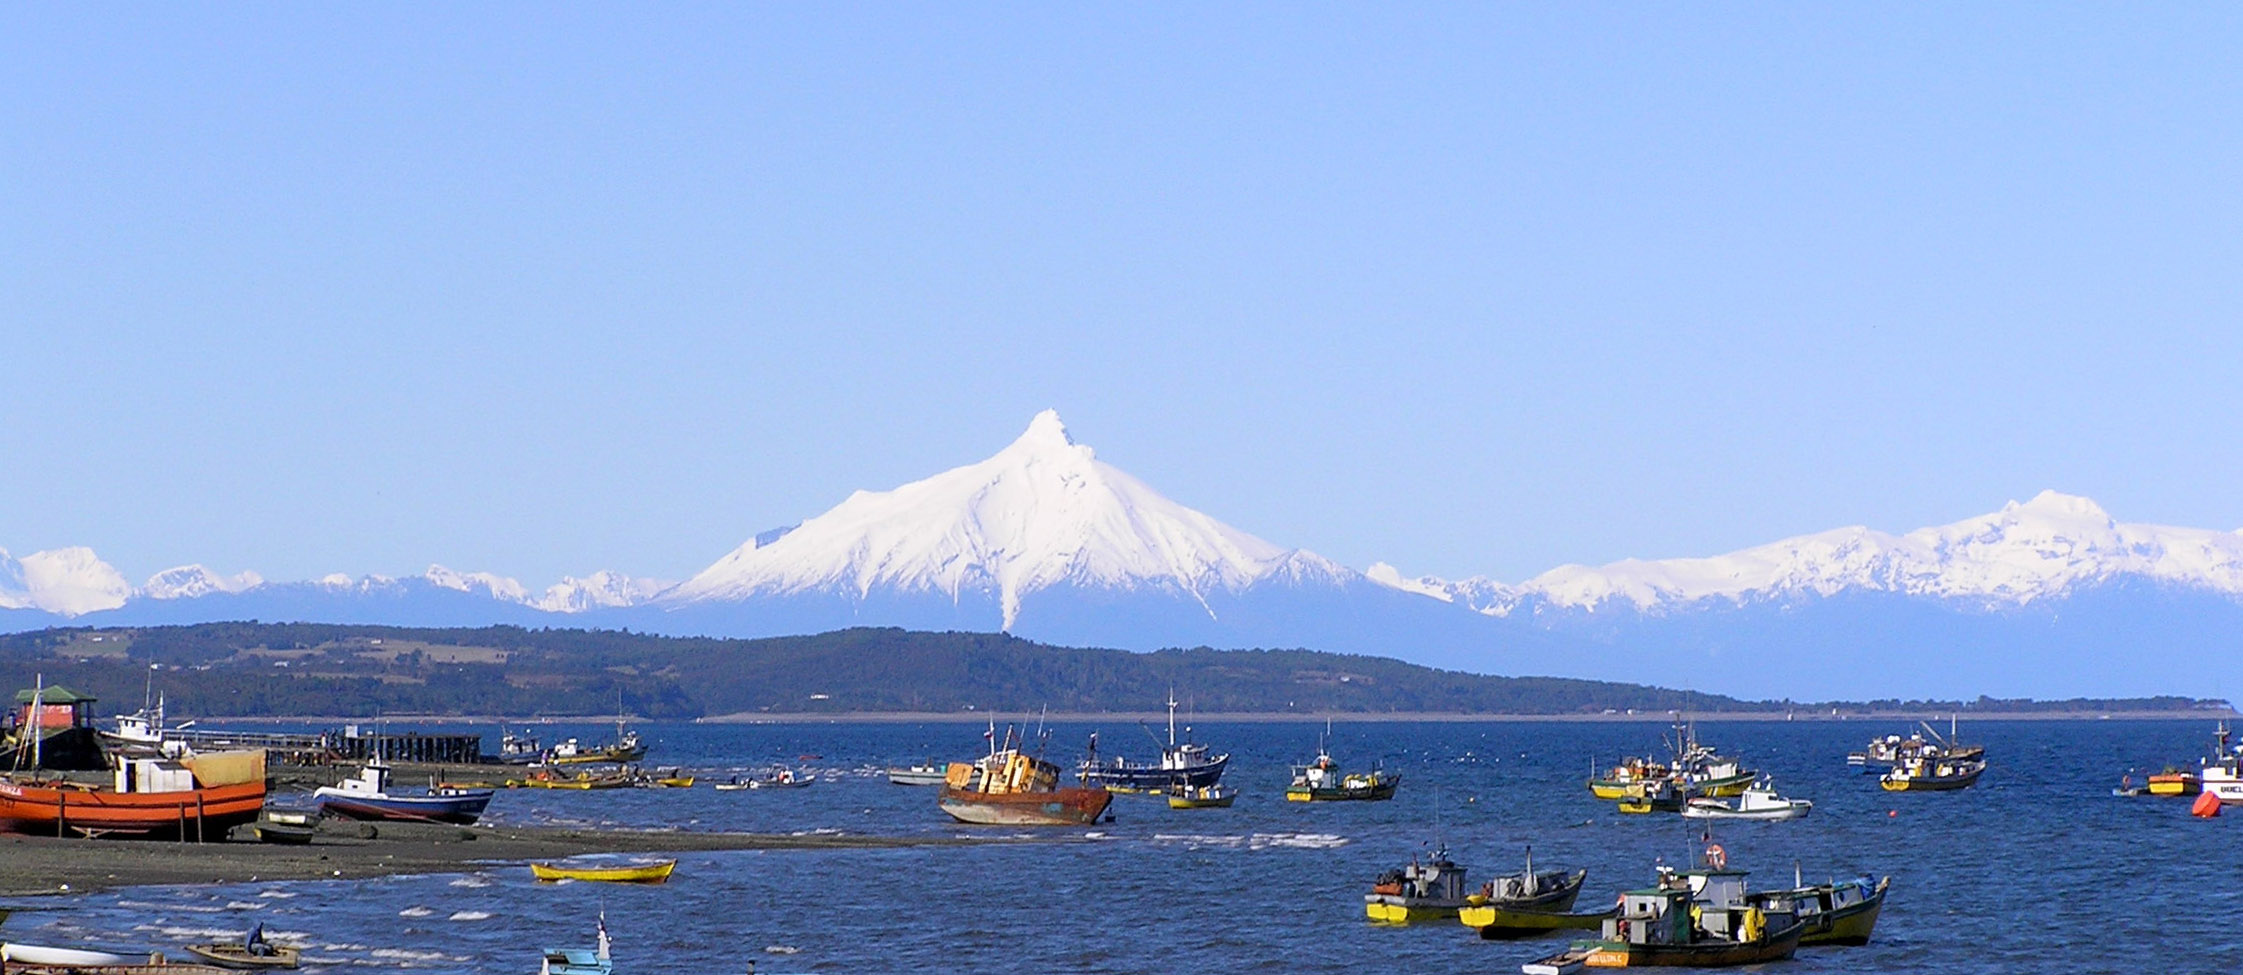 Quellons_Coastline_with_Volcano_Corcovado_in_the_distance_